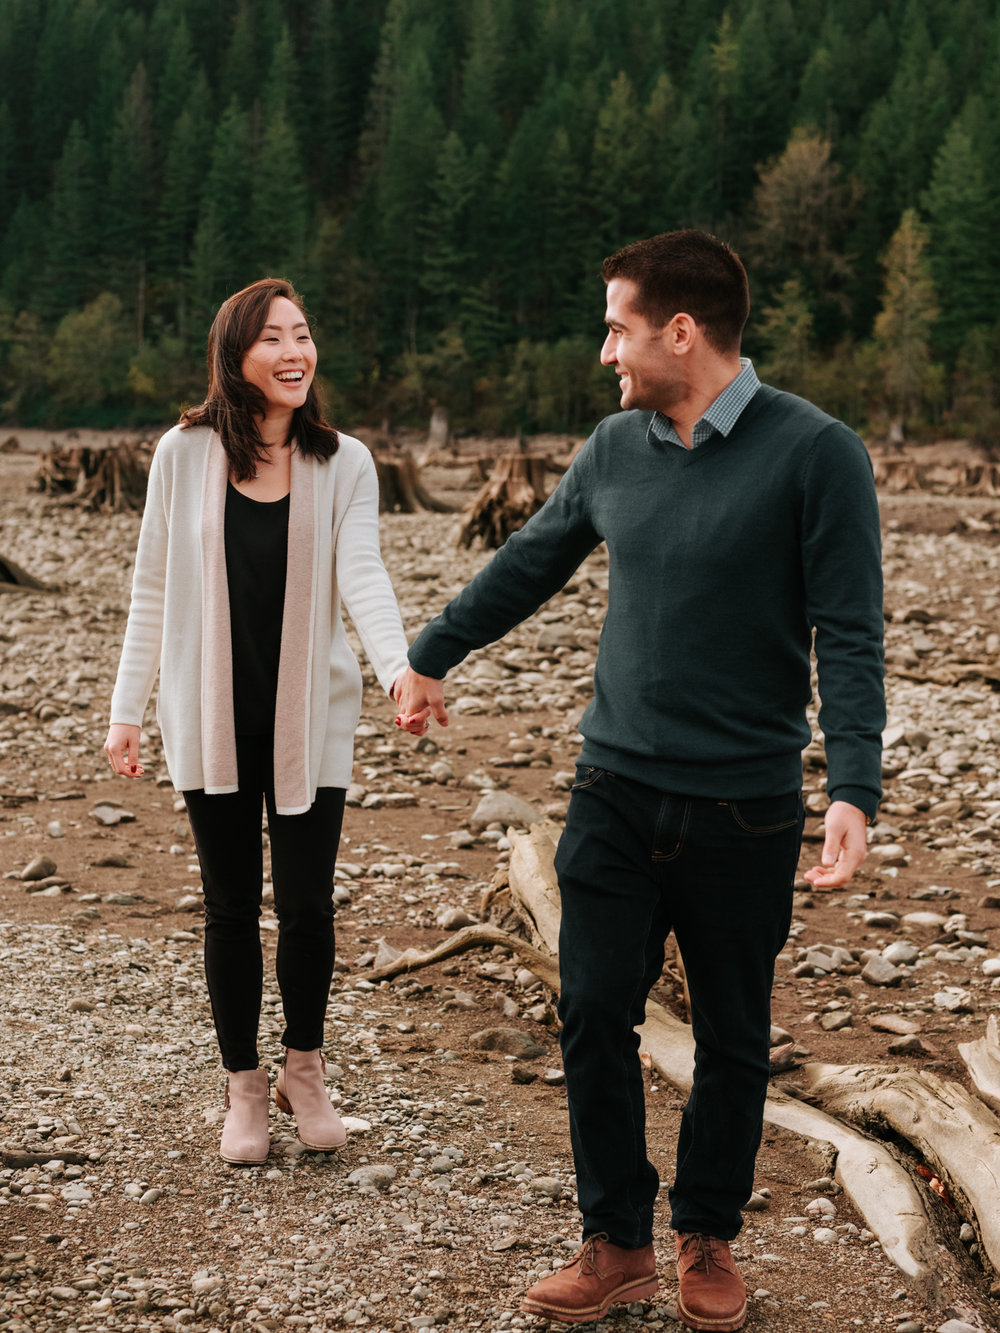 Seattle Engagement Photographer_Stolen Glimpses 46.jpg